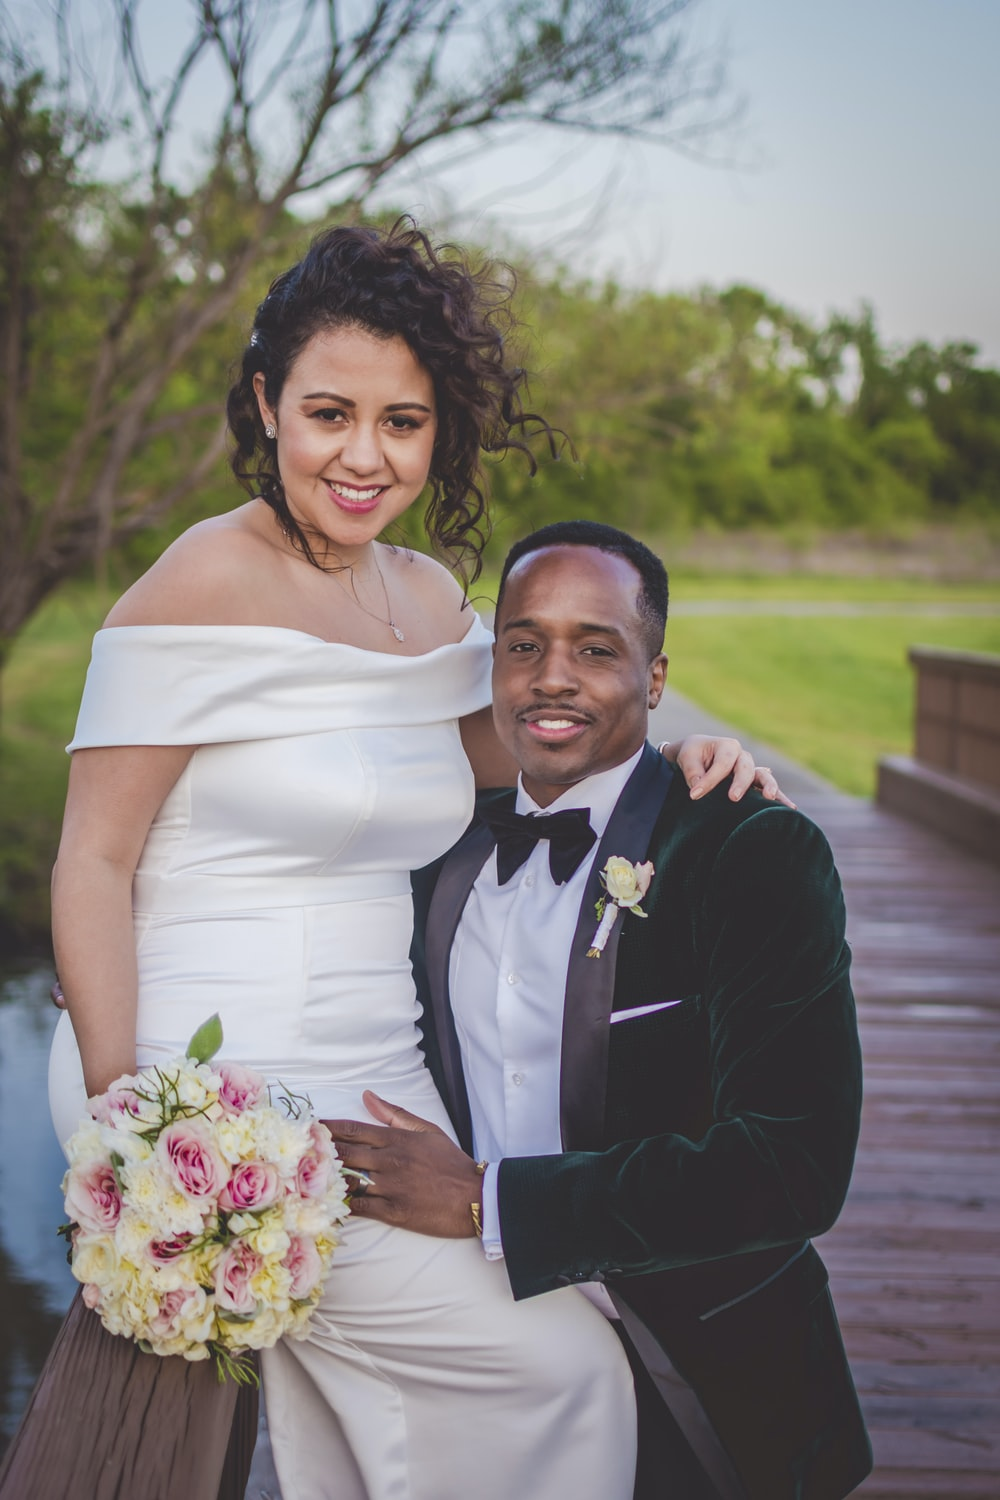 Man In Black Suit Jacket Holding Woman In White Wedding Dress Photo Free Apparel Image On Unsplash,Casual Outdoor Wedding Dress Ideas